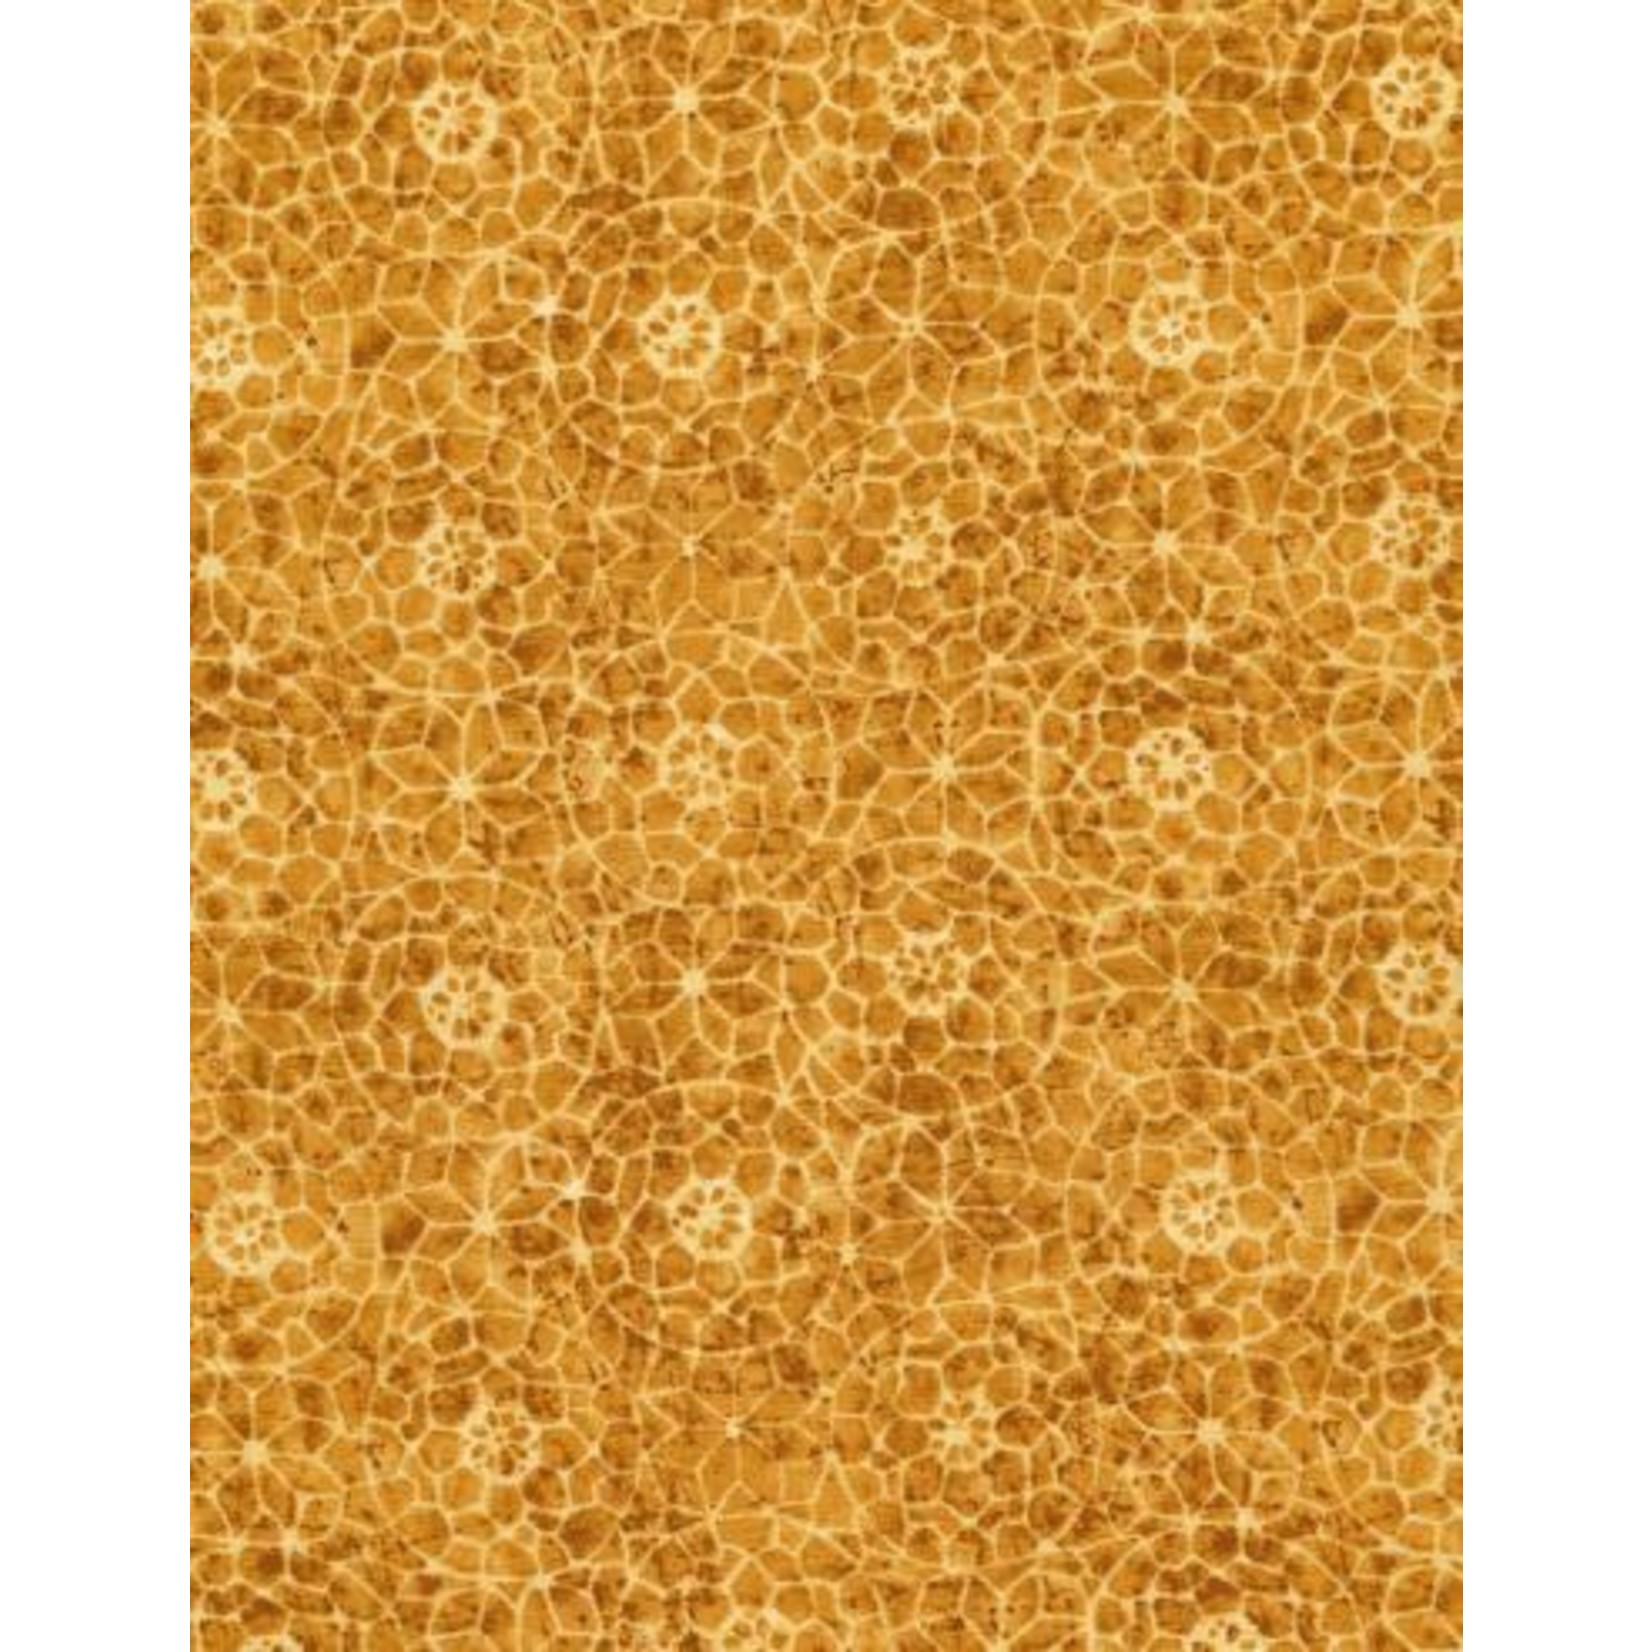 TIMELESS TREASURES TAPESTRY, Gold, PER CM OR $20/M